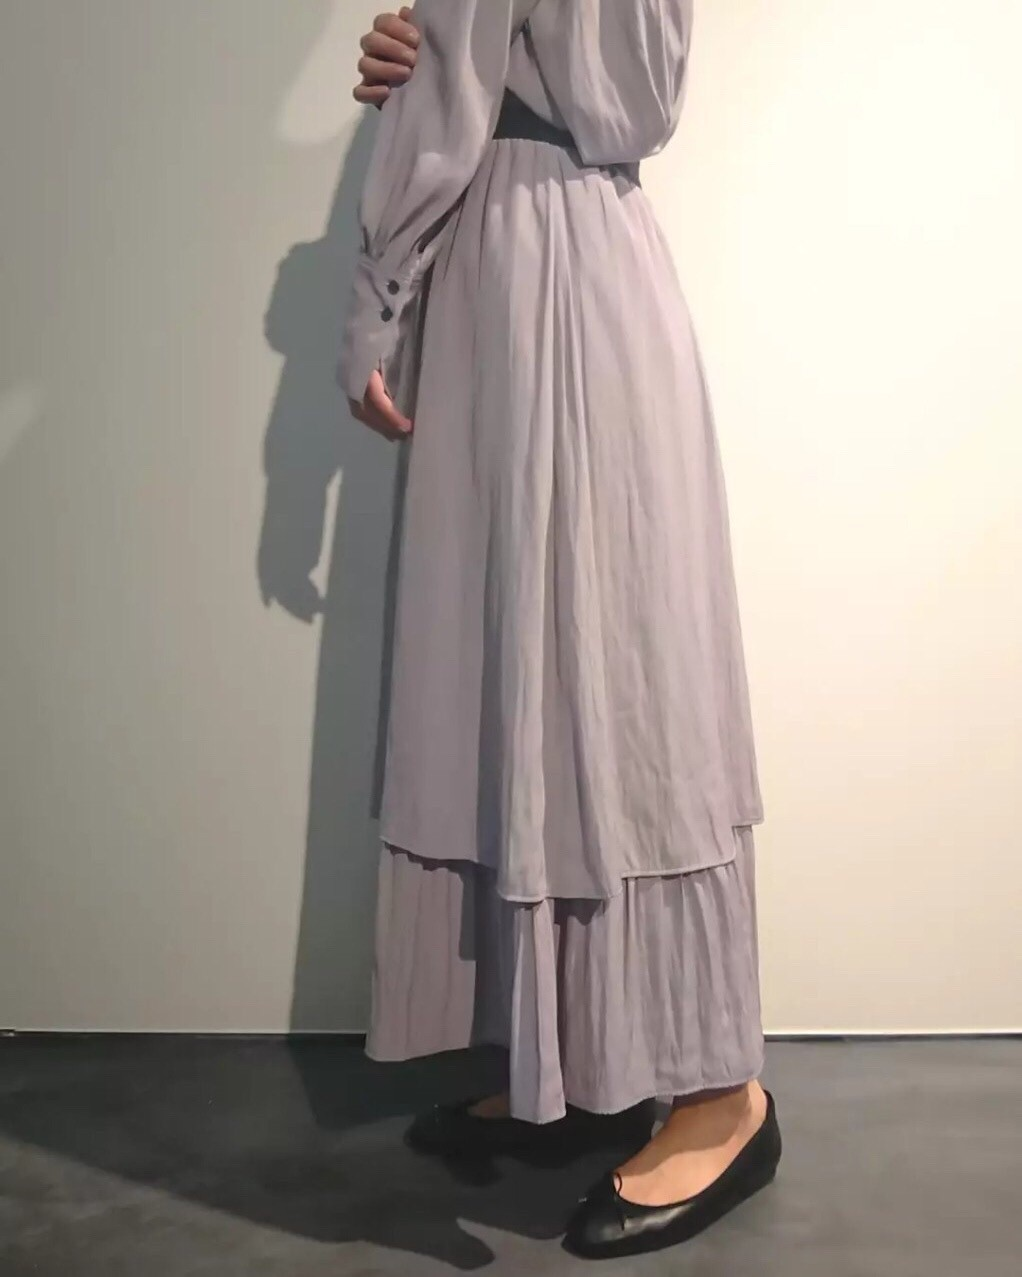 【Boutique Ordinary】ヴィンテージフレアスカート